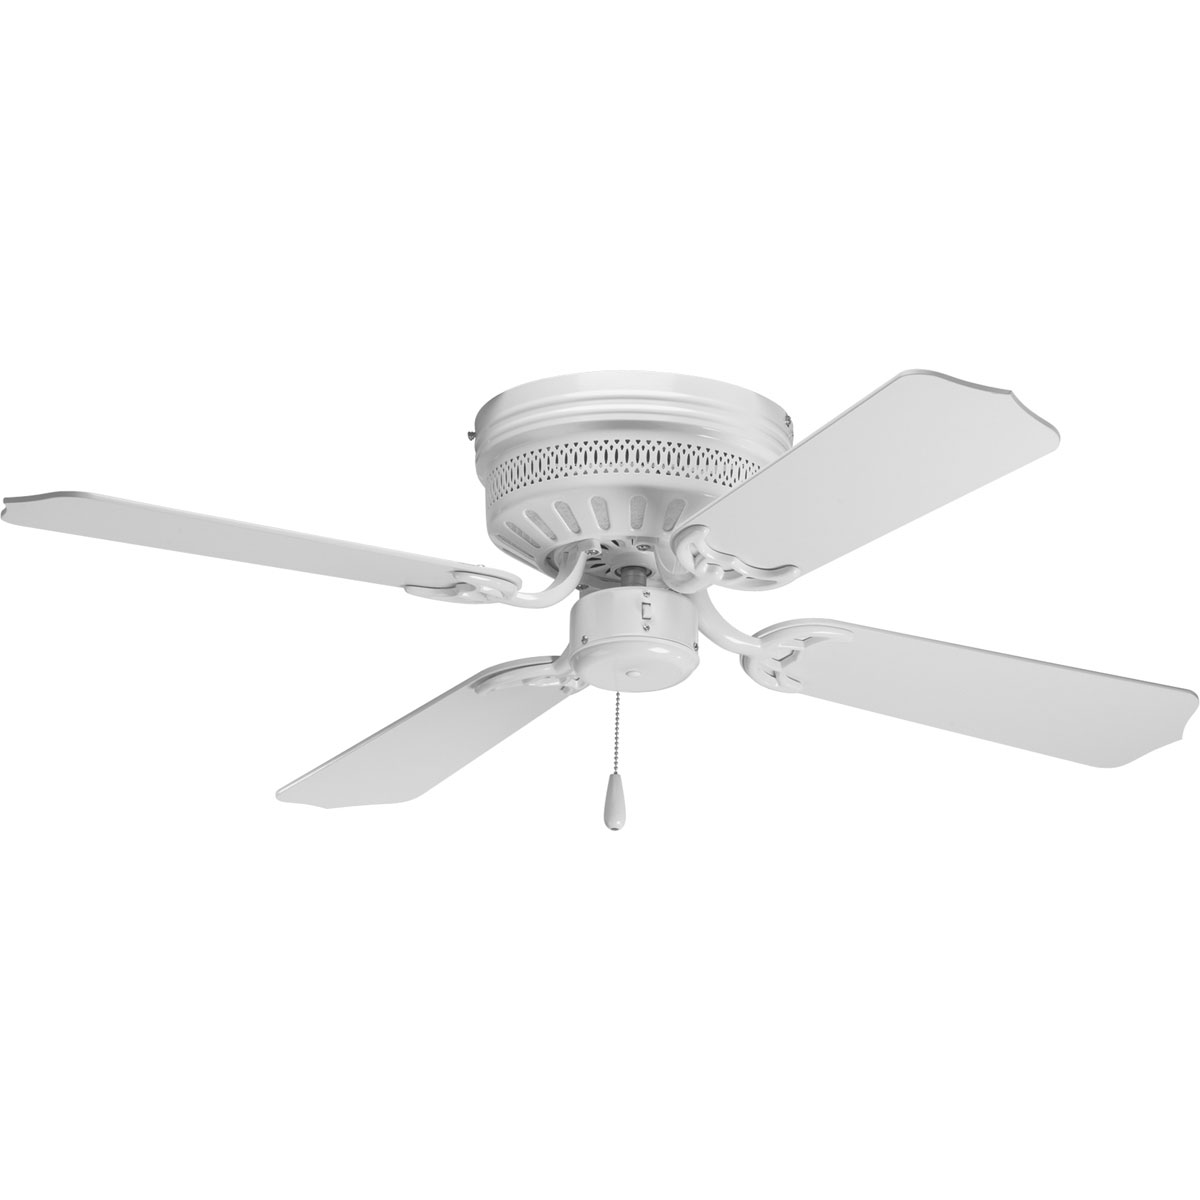 Progress Lighting P2524 30 Airpro 42 Inch Hugger Ceiling Fan